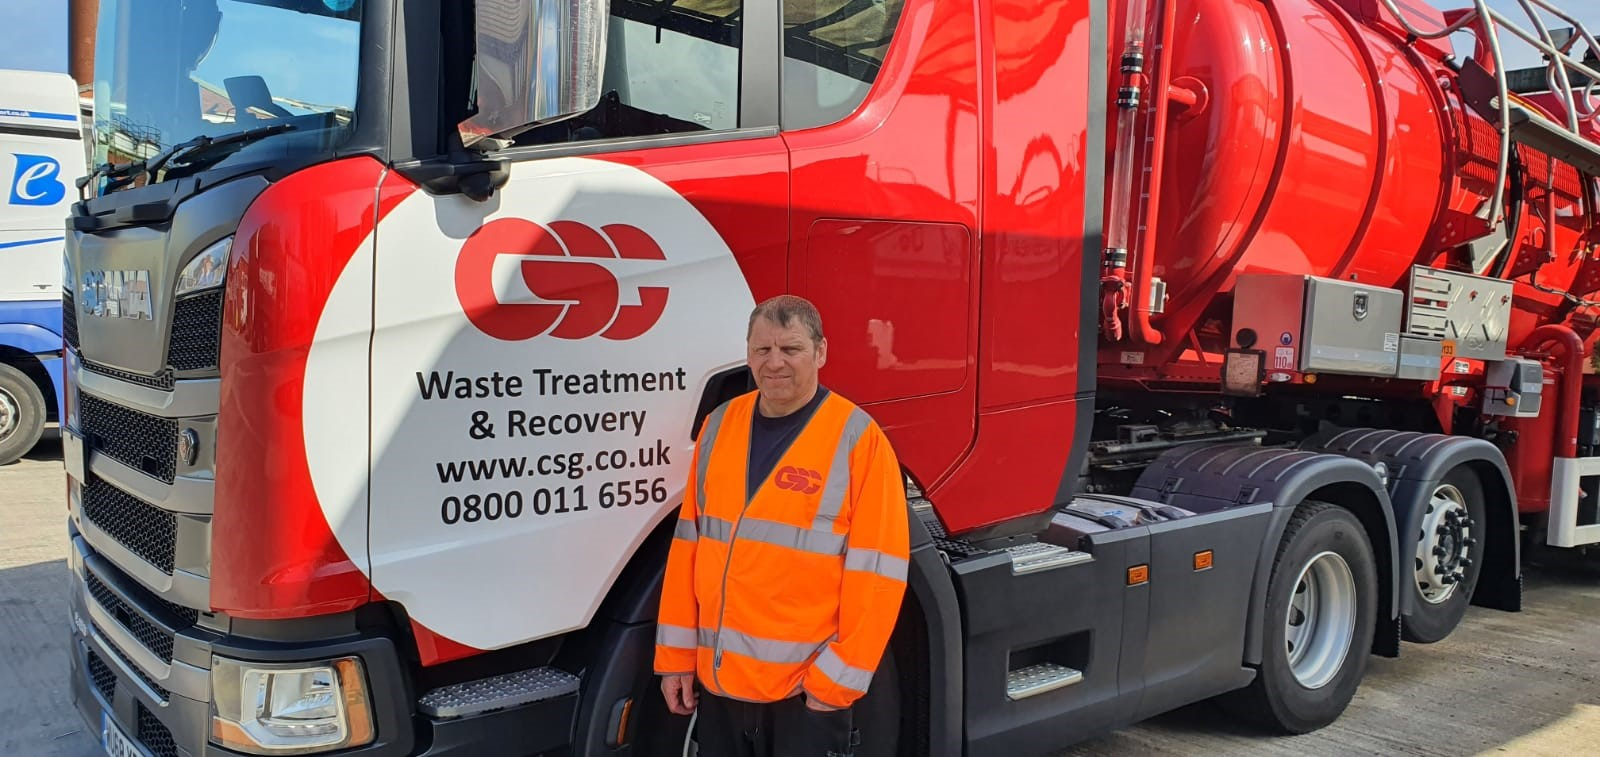 CSG Driver Gary Foote with his HGV-truck